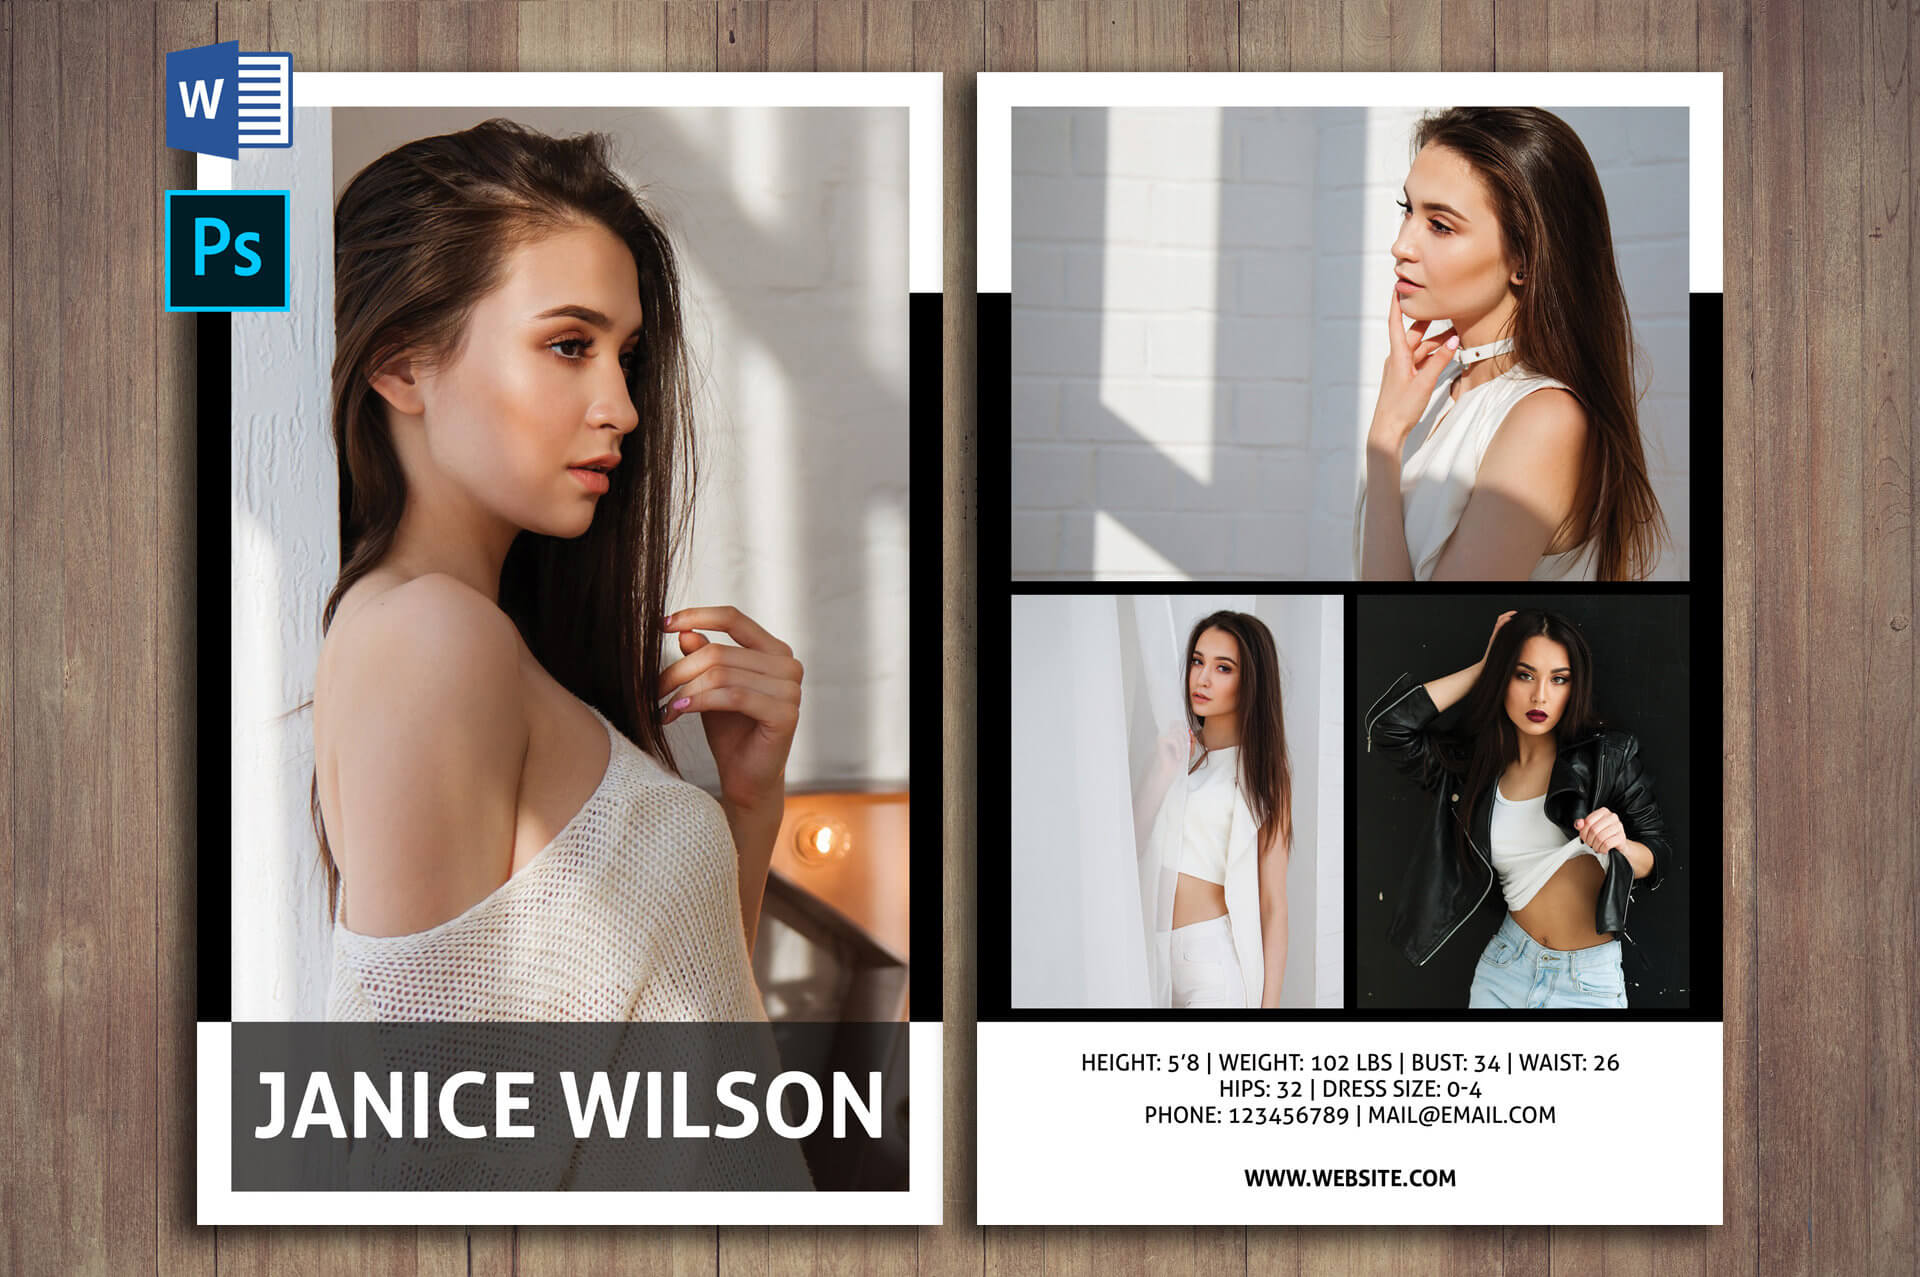 Professional Comp Card Psd Template Modeling Comp Card | Etsy Inside Comp Card Template Download